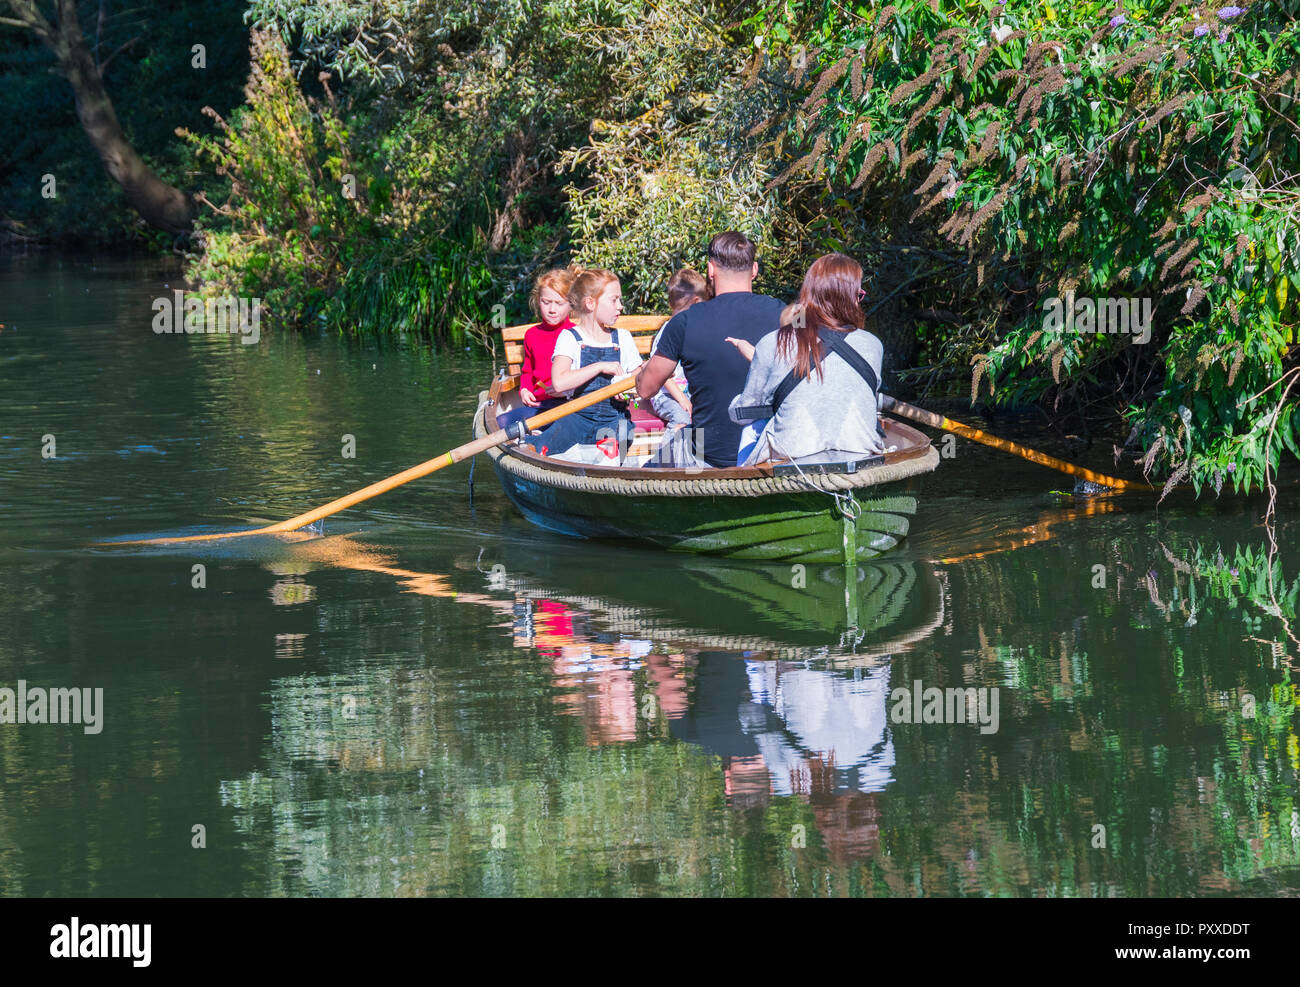 Family in a small rowing boat showing reflections in the water on a canal in Autumn, UK. - Stock Image